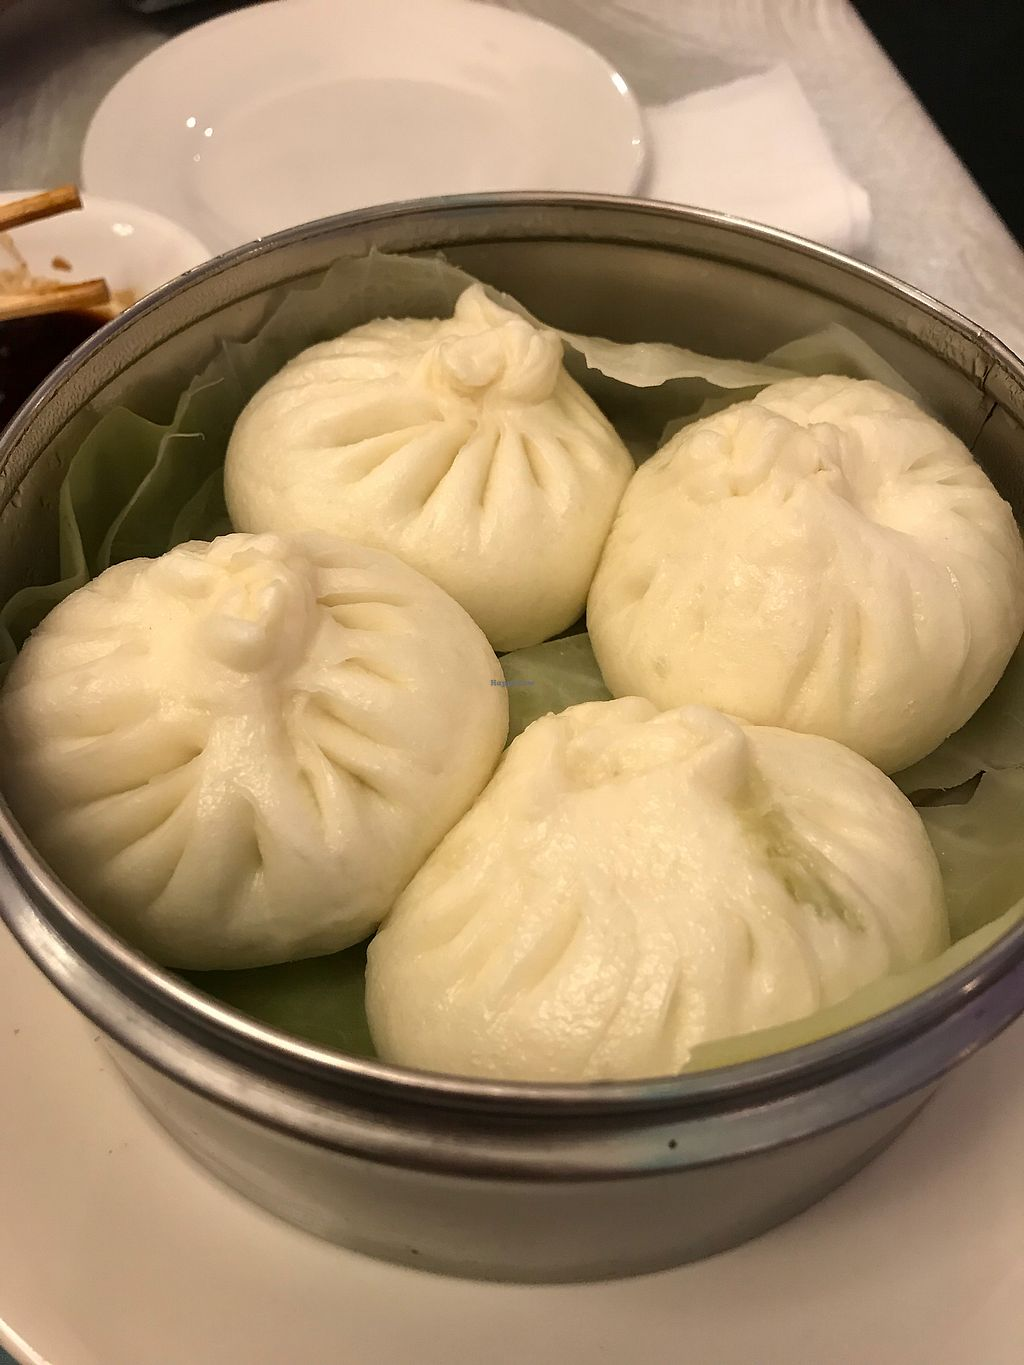 """Photo of The Vegetable Garden  by <a href=""""/members/profile/ohemgee"""">ohemgee</a> <br/>Steamed vegetable buns <br/> December 27, 2017  - <a href='/contact/abuse/image/2058/339732'>Report</a>"""